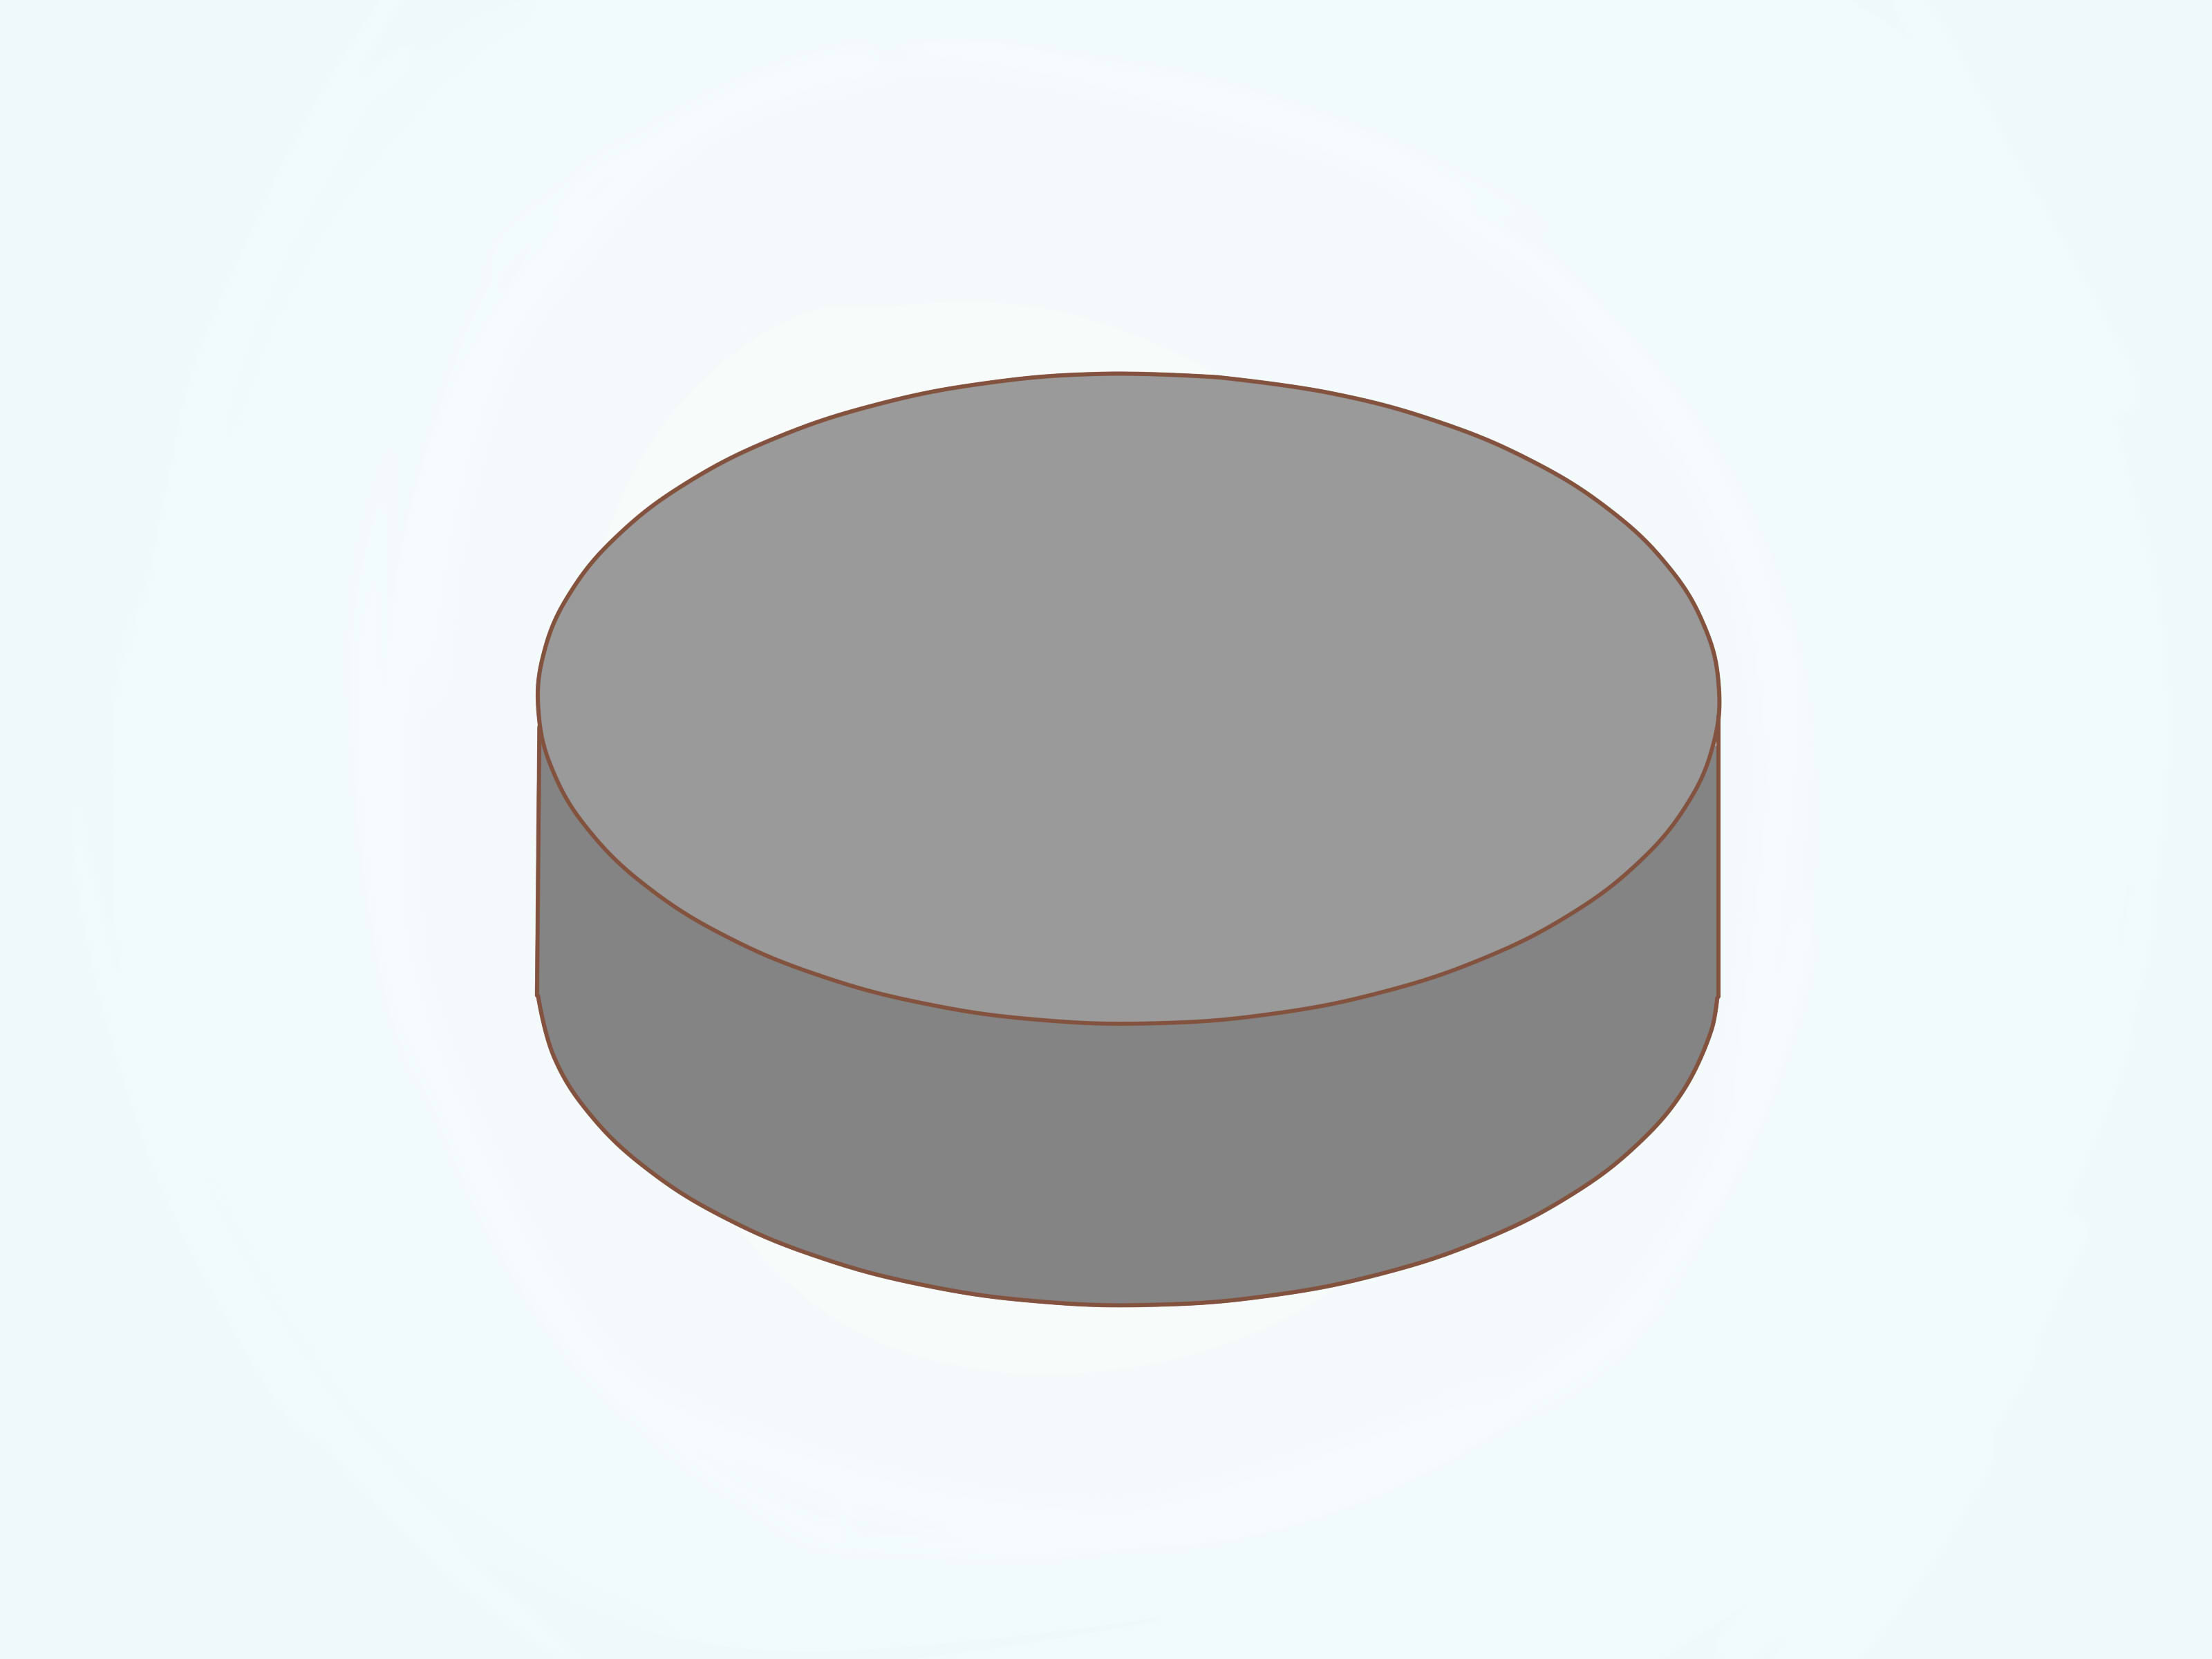 3200x2400 How To Draw A Hockey Puck 3 Steps (With Pictures)